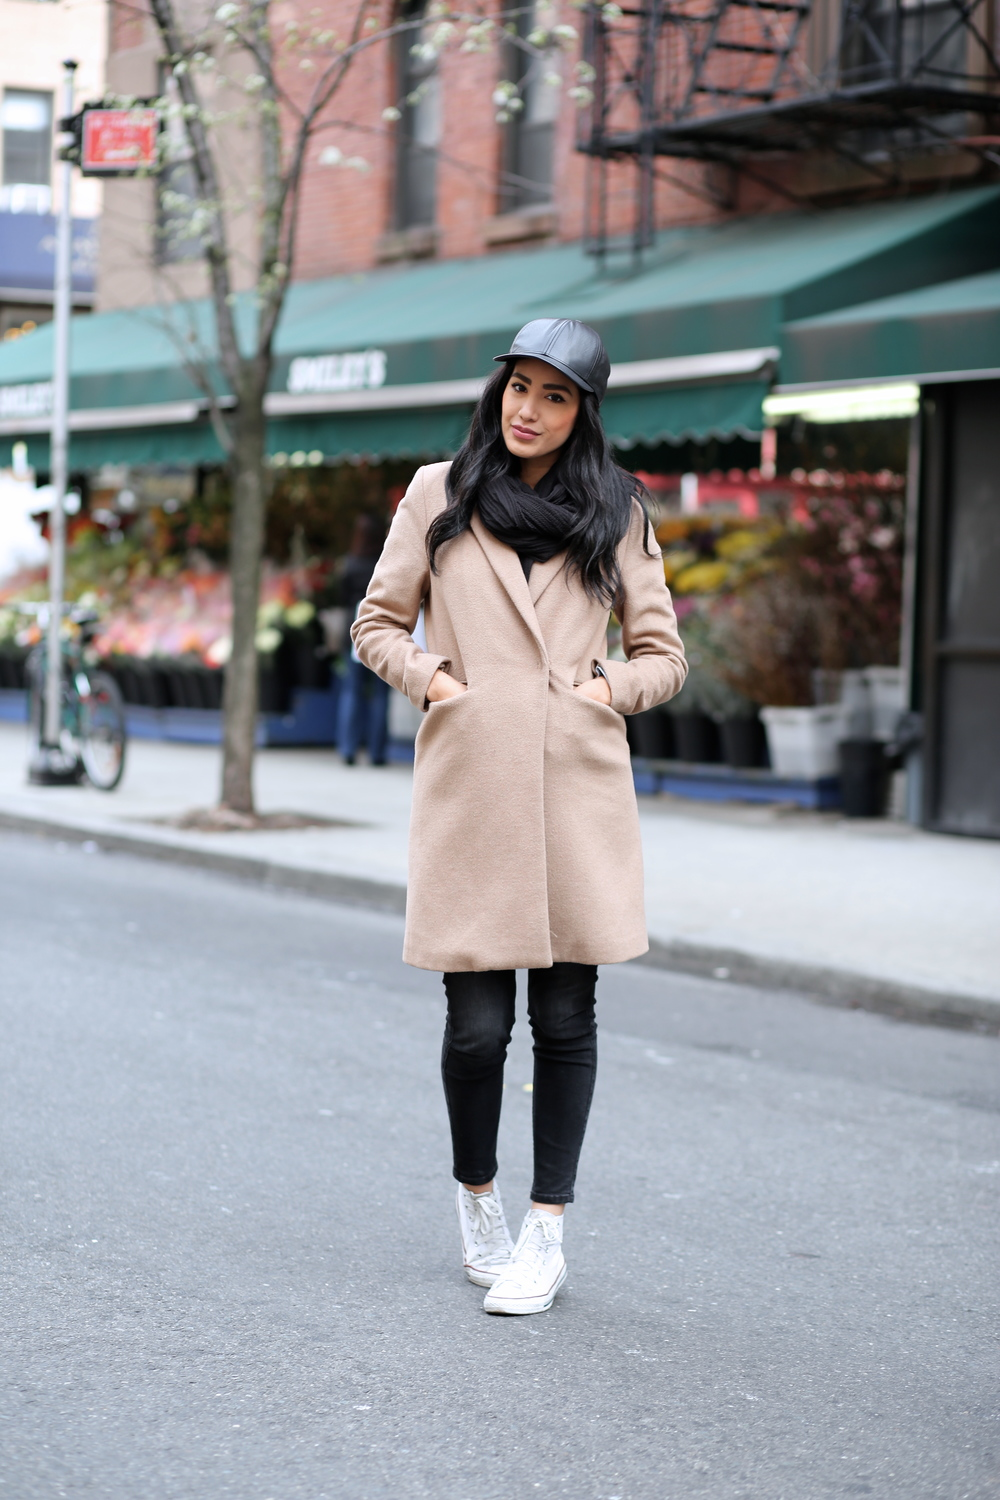 Oak NYC cap, H&M coat, Zara pants and scarf, Converse shoes                                                                                Photos by Jeff Thibodeau